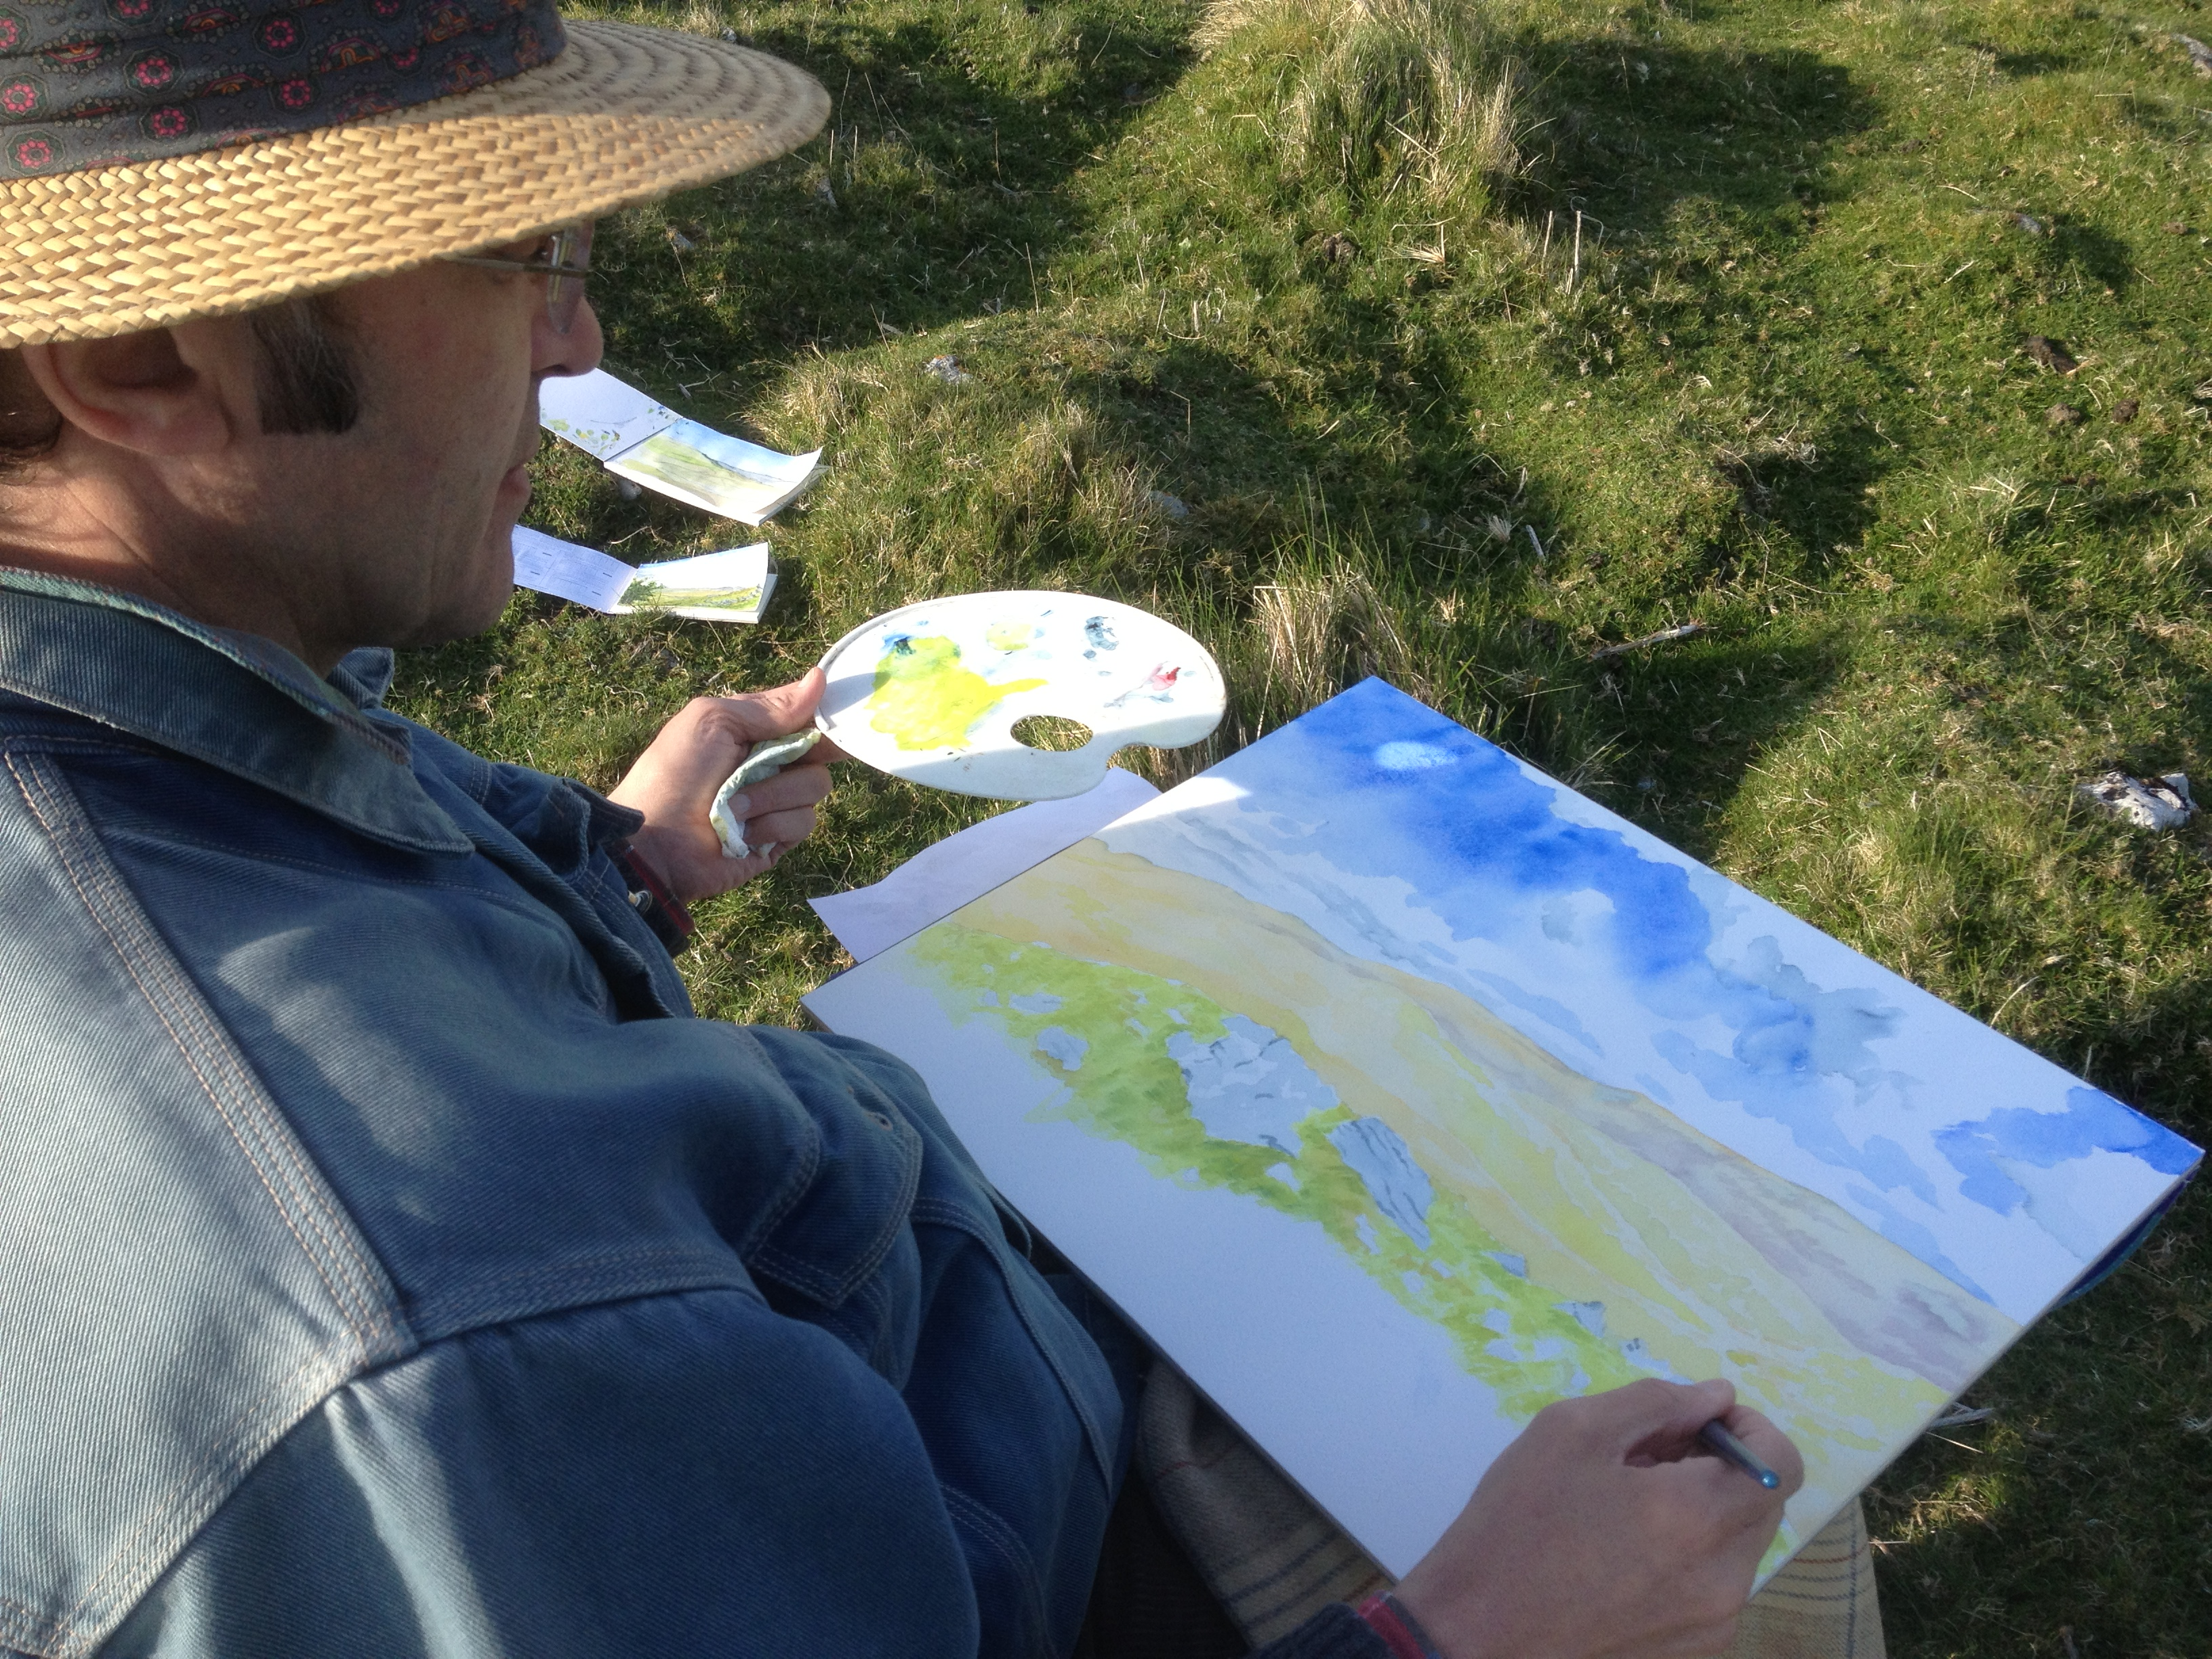 Ceri Thomas painting on location in south Wales (2014)